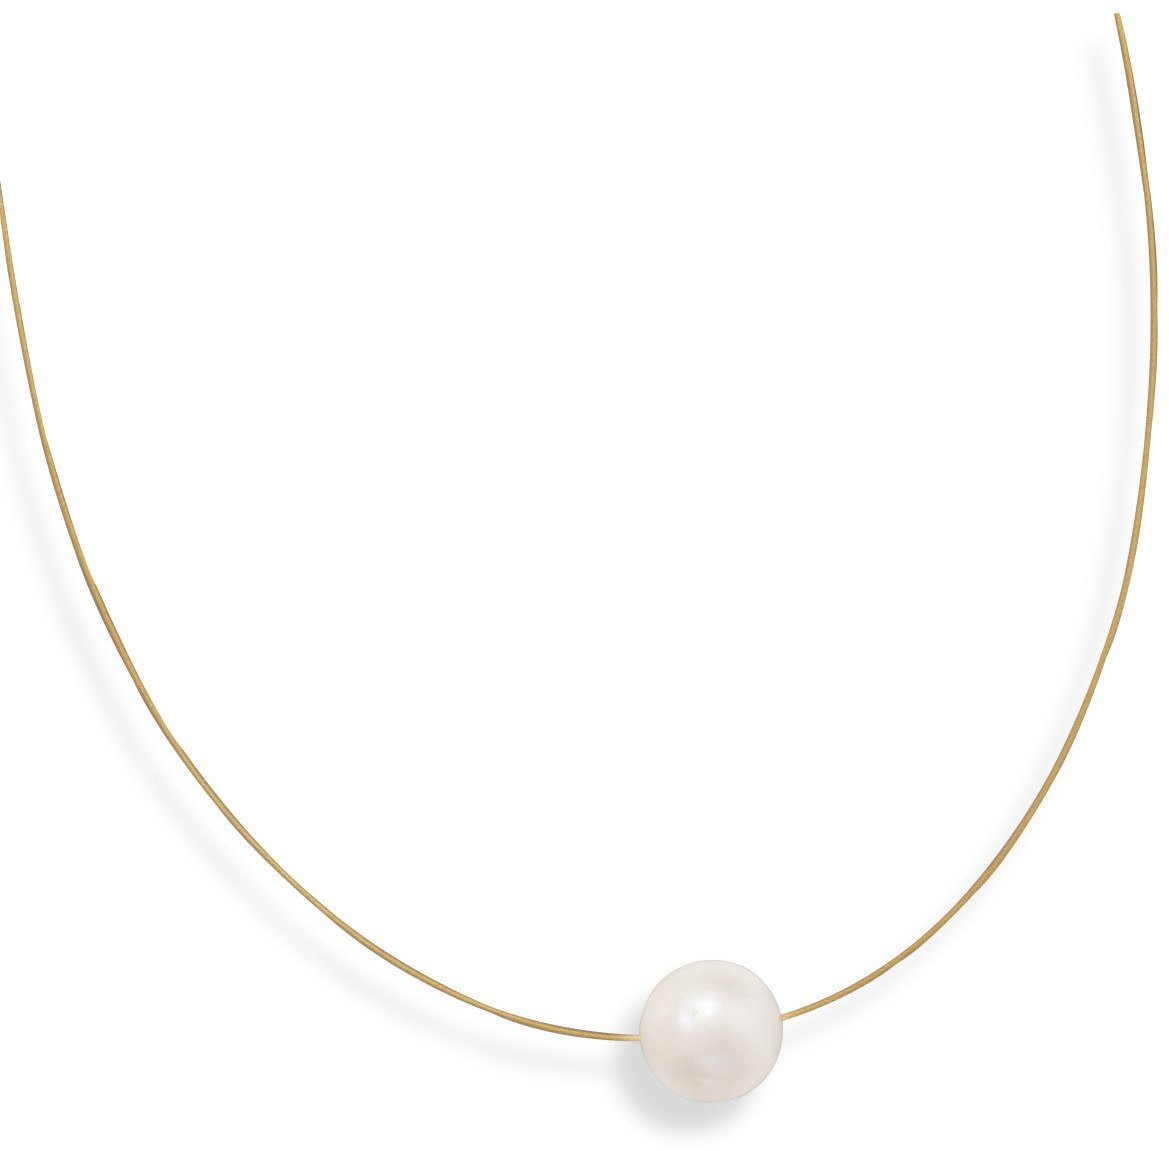 "16"" 24 Karat Gold Plated Necklace with Cultured Freshwater Pearl 925 Sterling Silver"